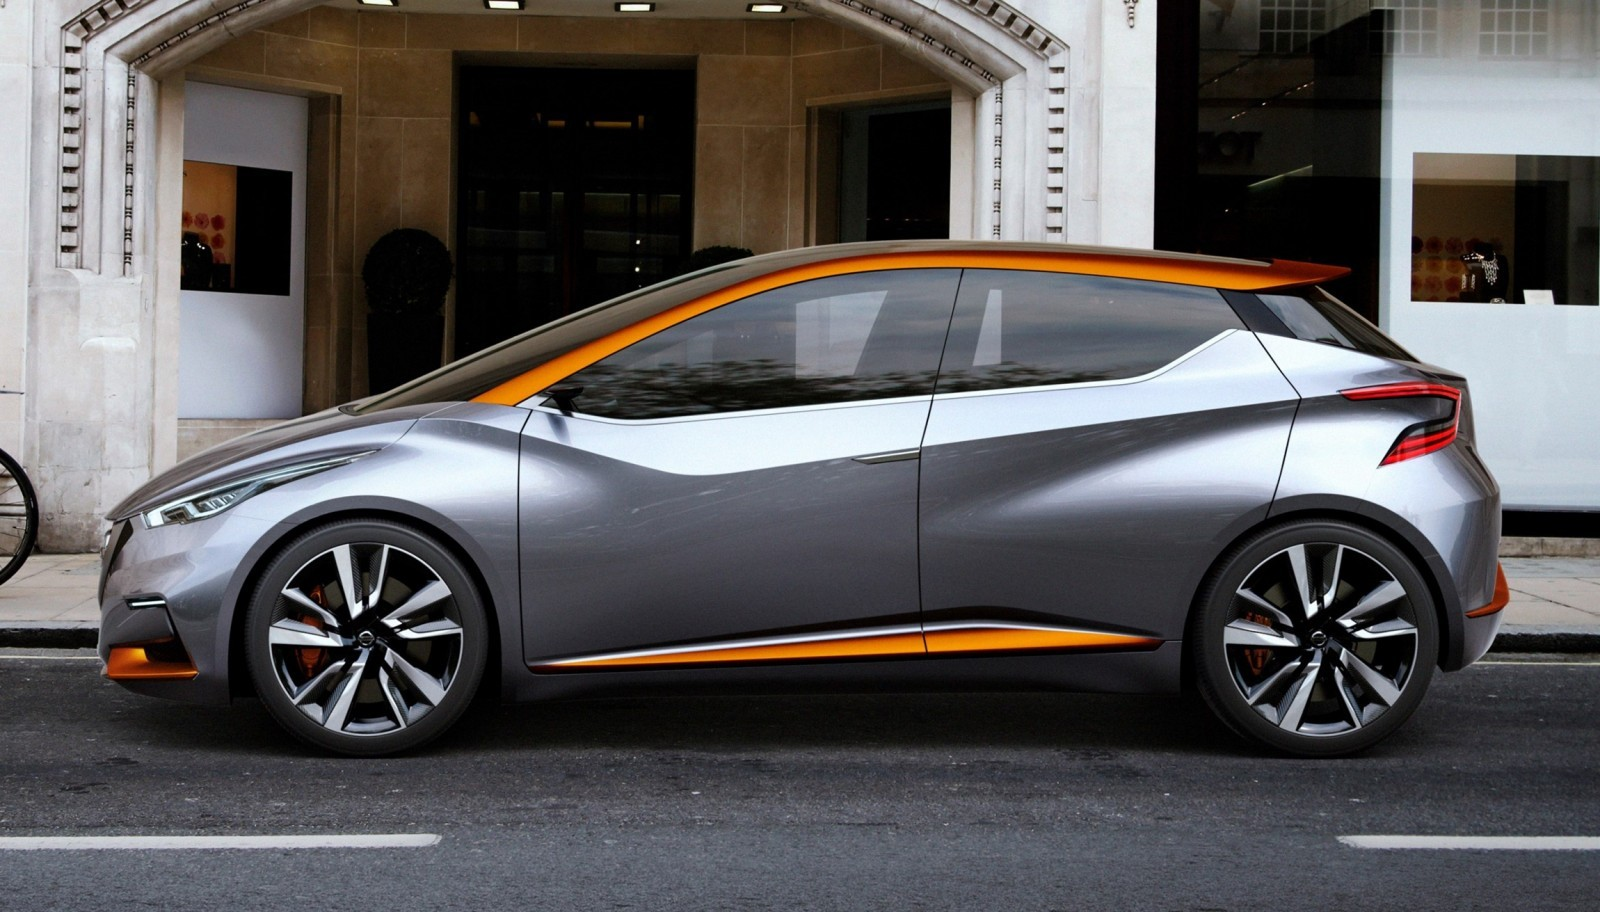 2015 Nissan SWAY Concept 3